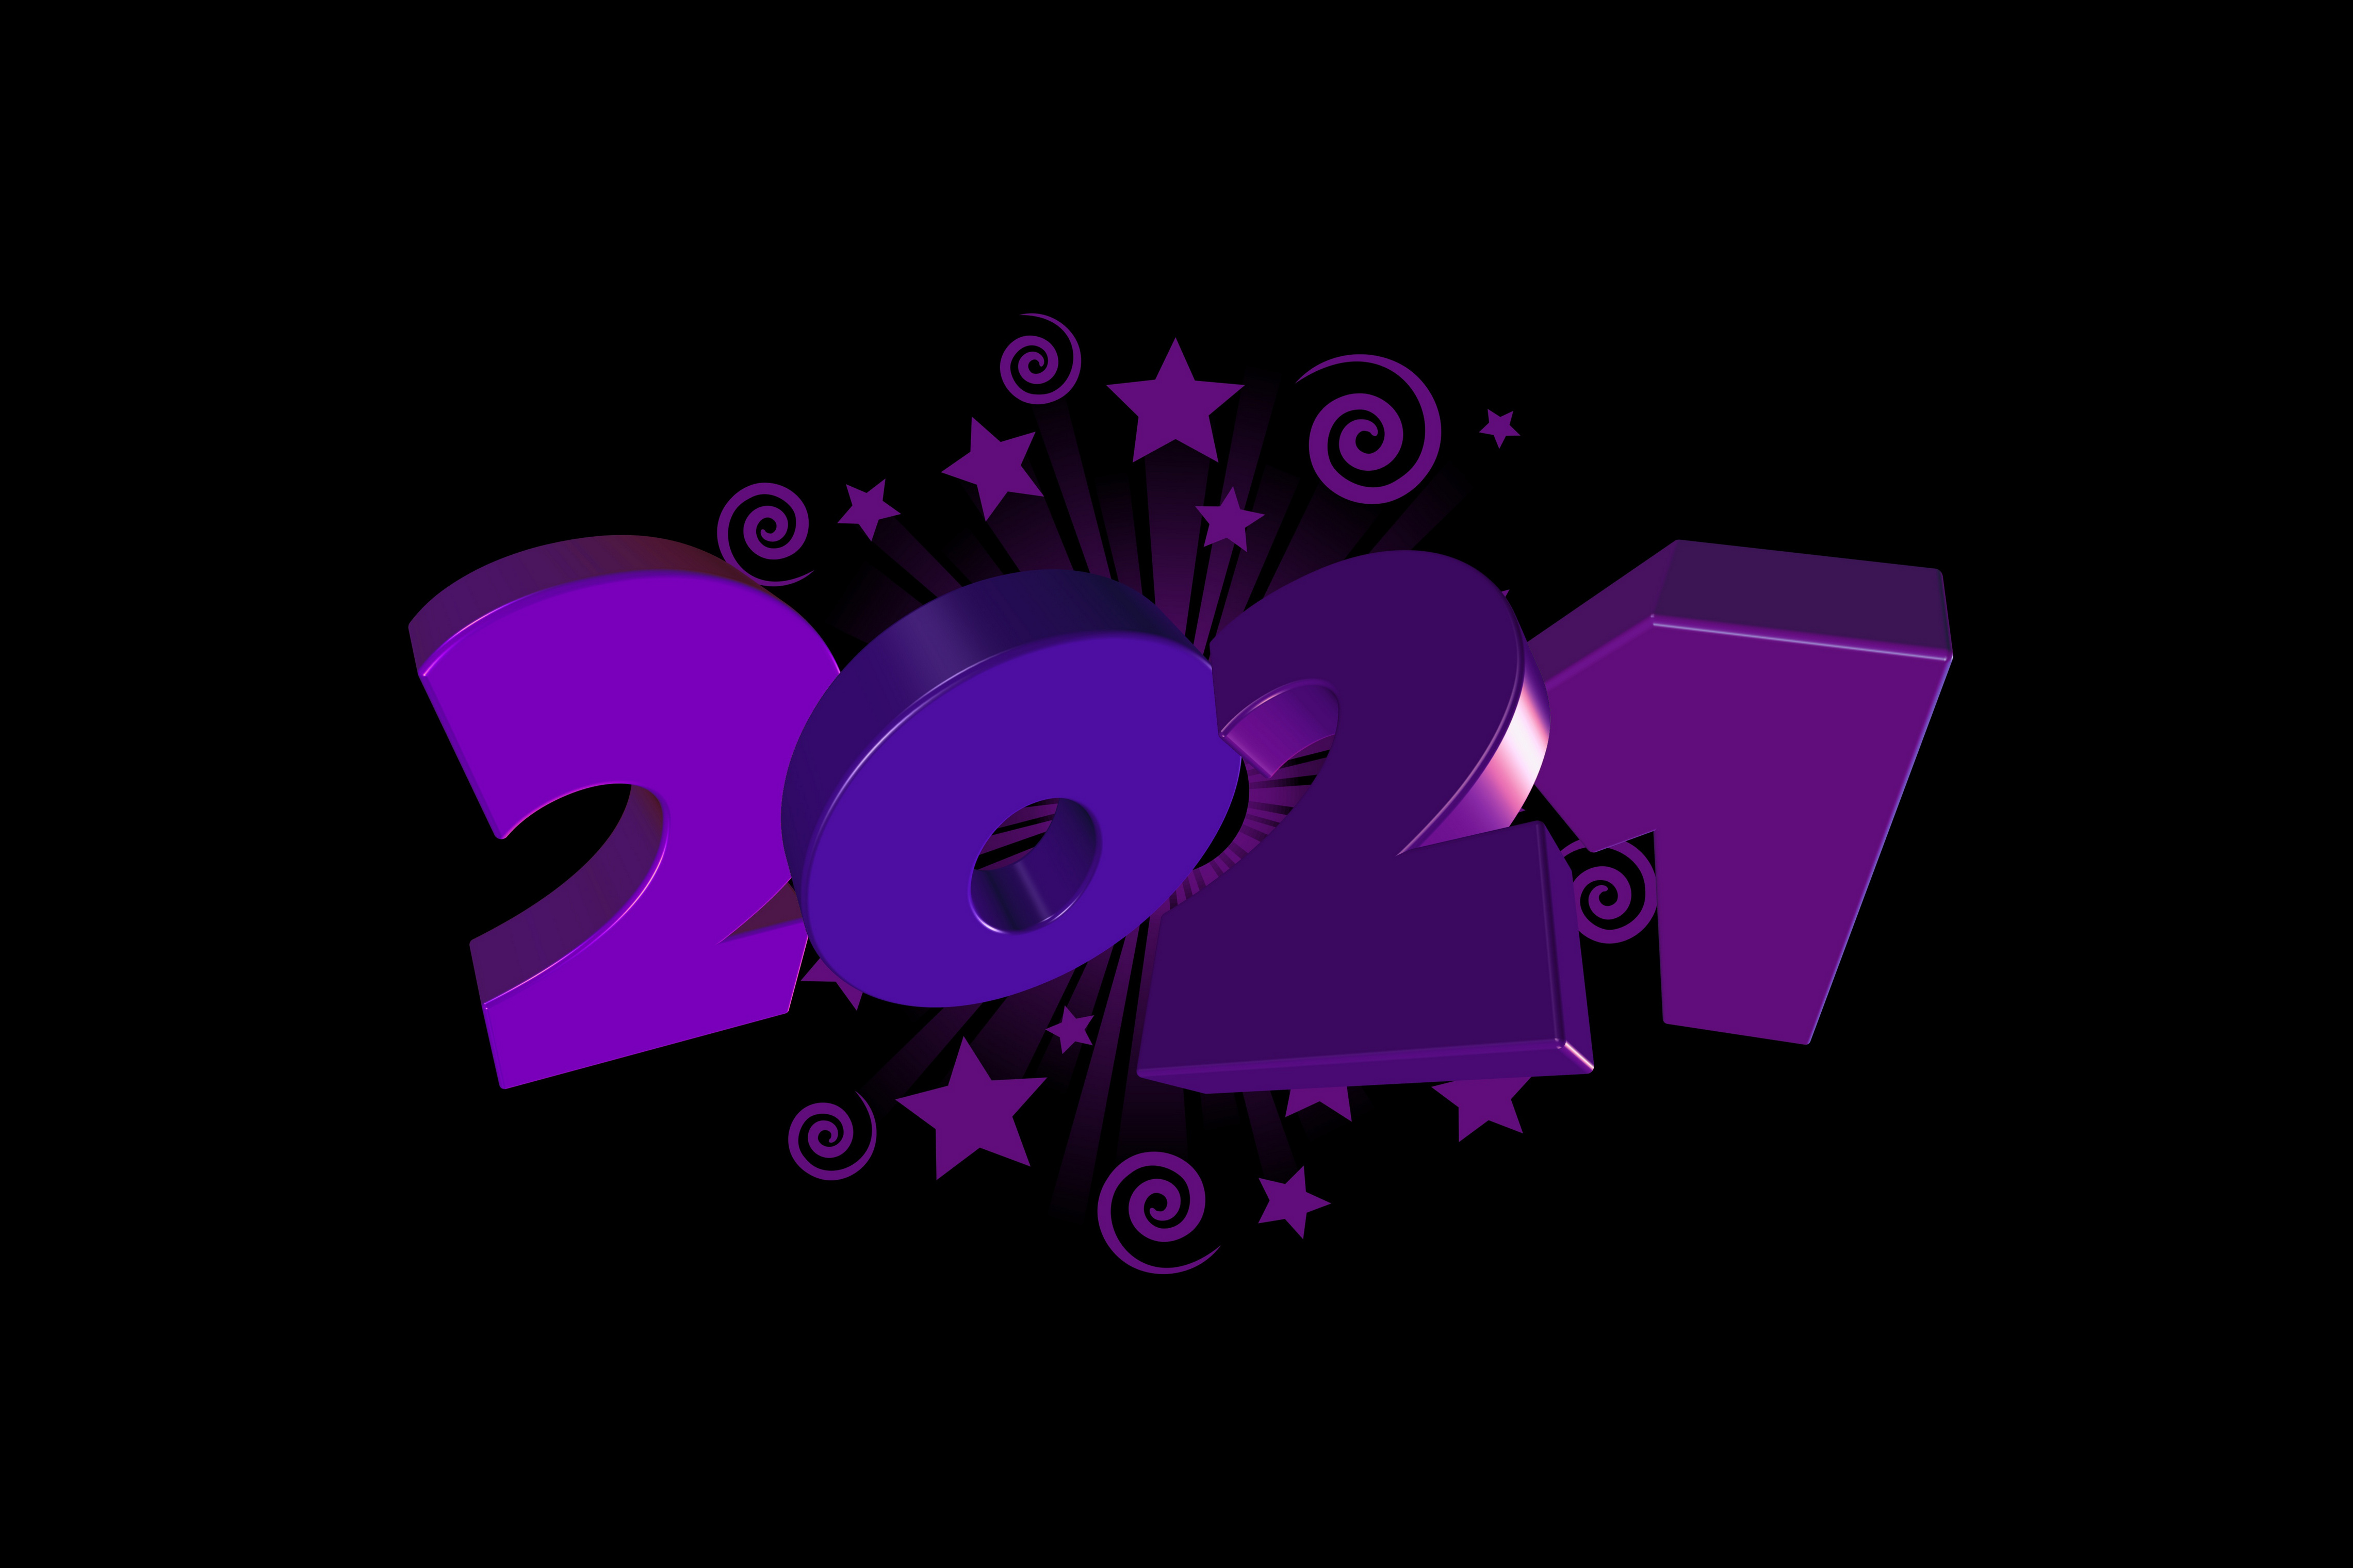 New Year 2021 4k Ultra HD Wallpaper  Background Image  4562x3041  ID:1119259 - Wallpaper Abyss